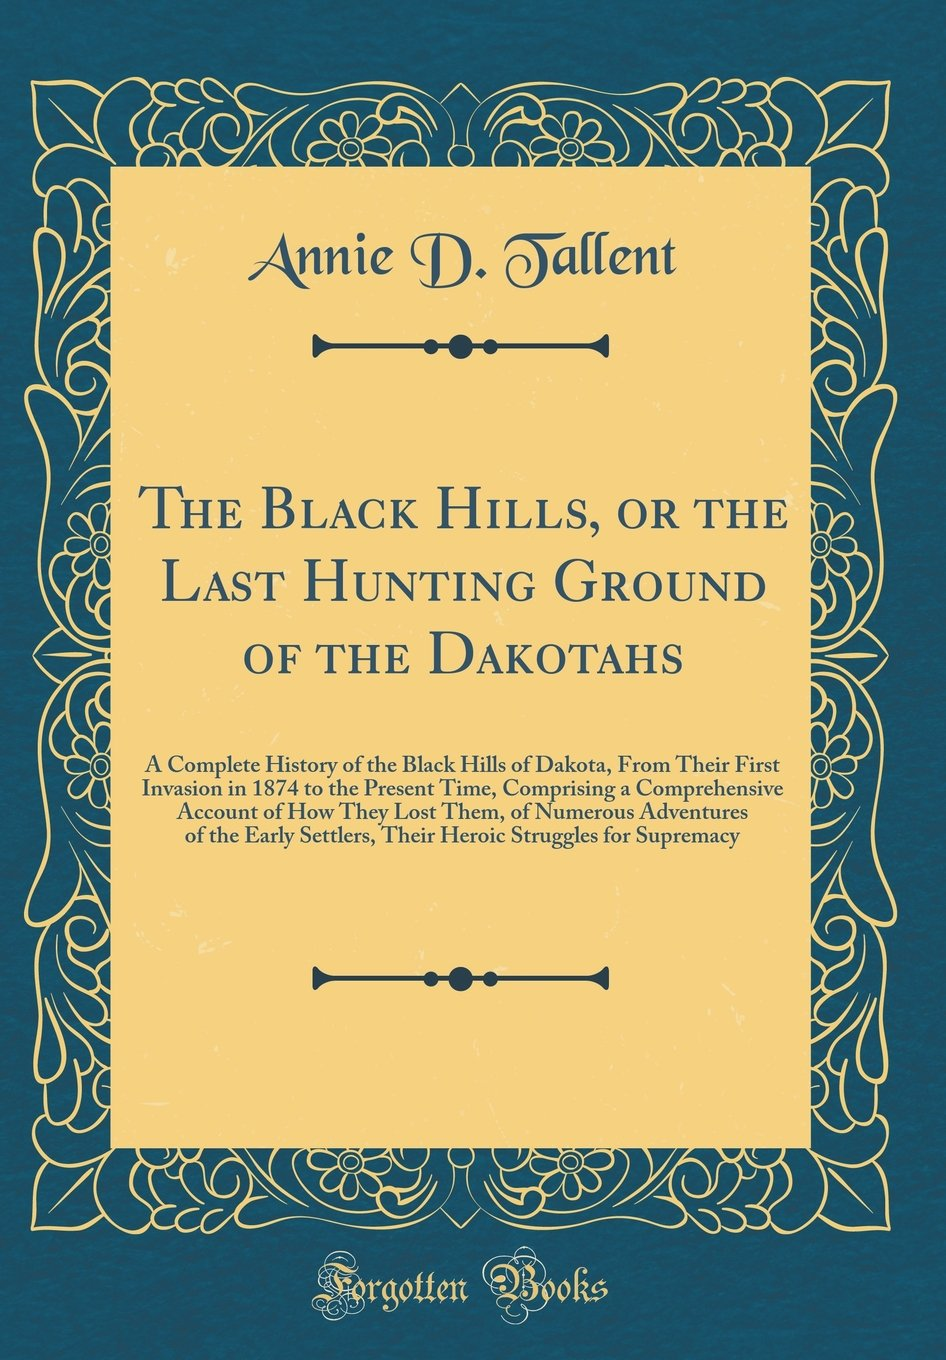 The Black Hills, or the Last Hunting Ground of the Dakotahs: A Complete History of the Black Hills of Dakota, From Their First Invasion in 1874 to the ... Lost Them, of Numerous Adventures of the Ea ebook